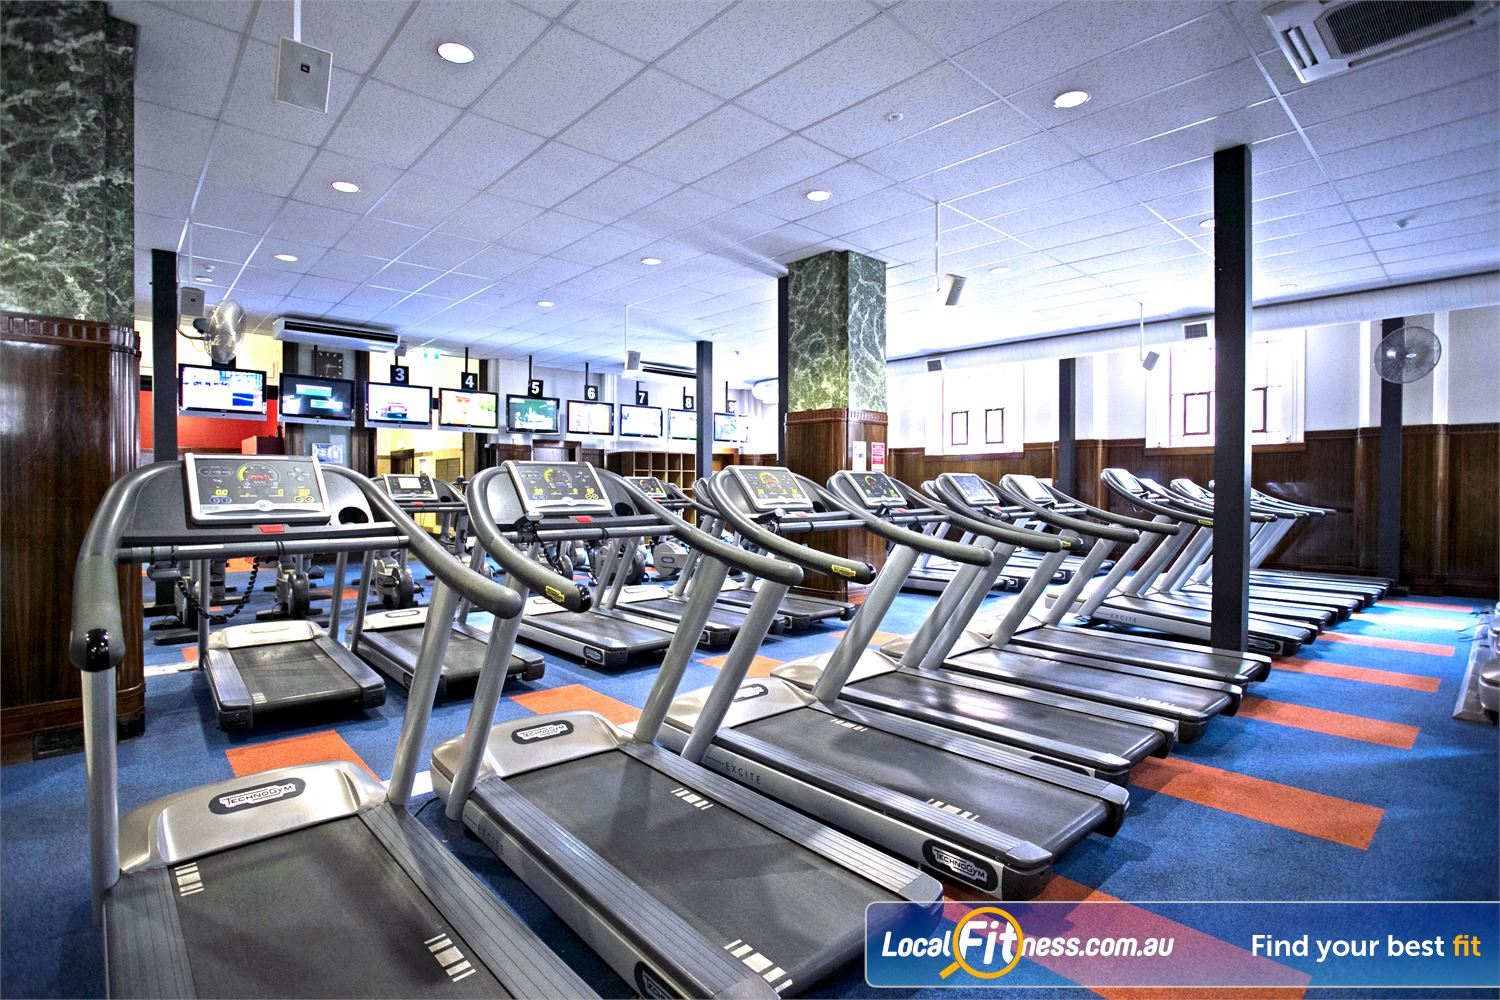 Goodlife Health Clubs Adelaide City Adelaide Welcome to Goodlife Adelaide gym in the heart of the CBD.